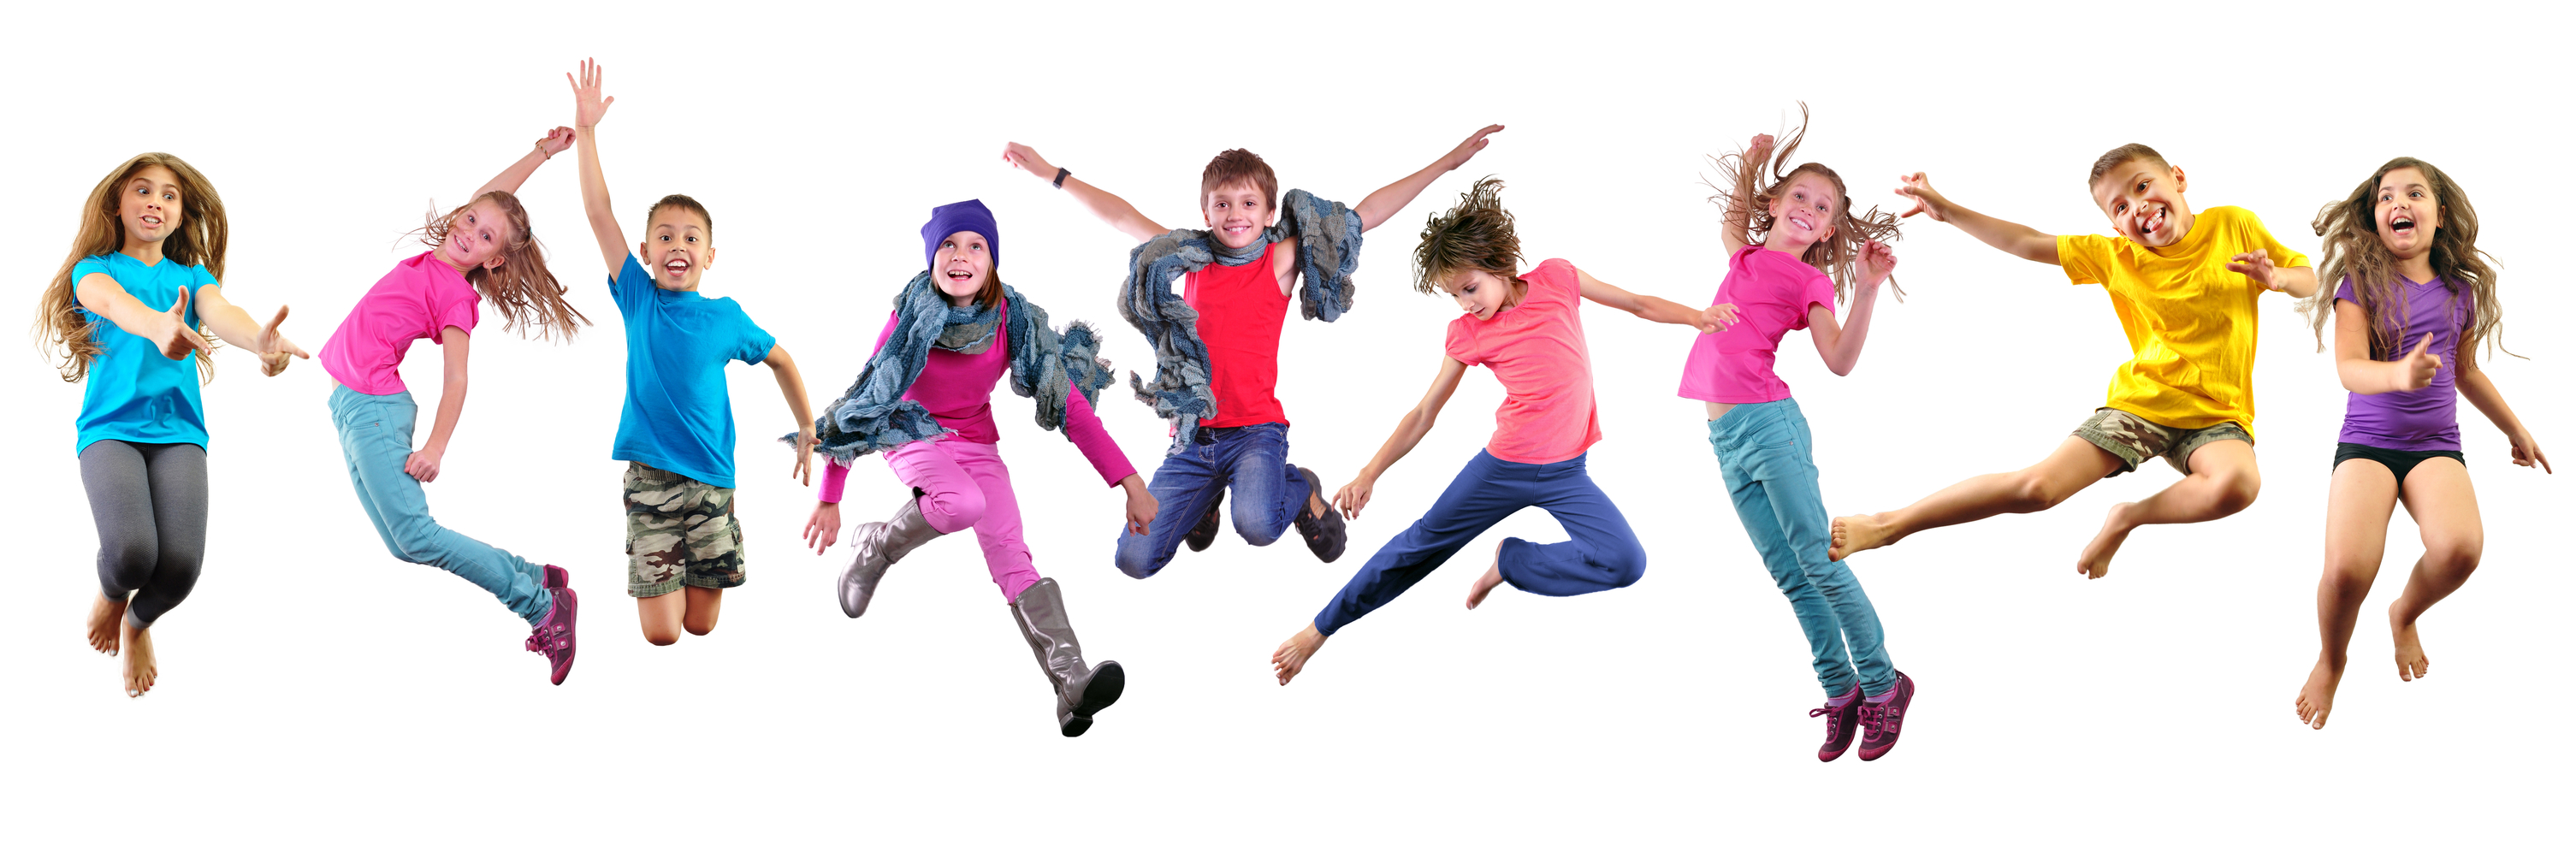 Image of happy children exercising